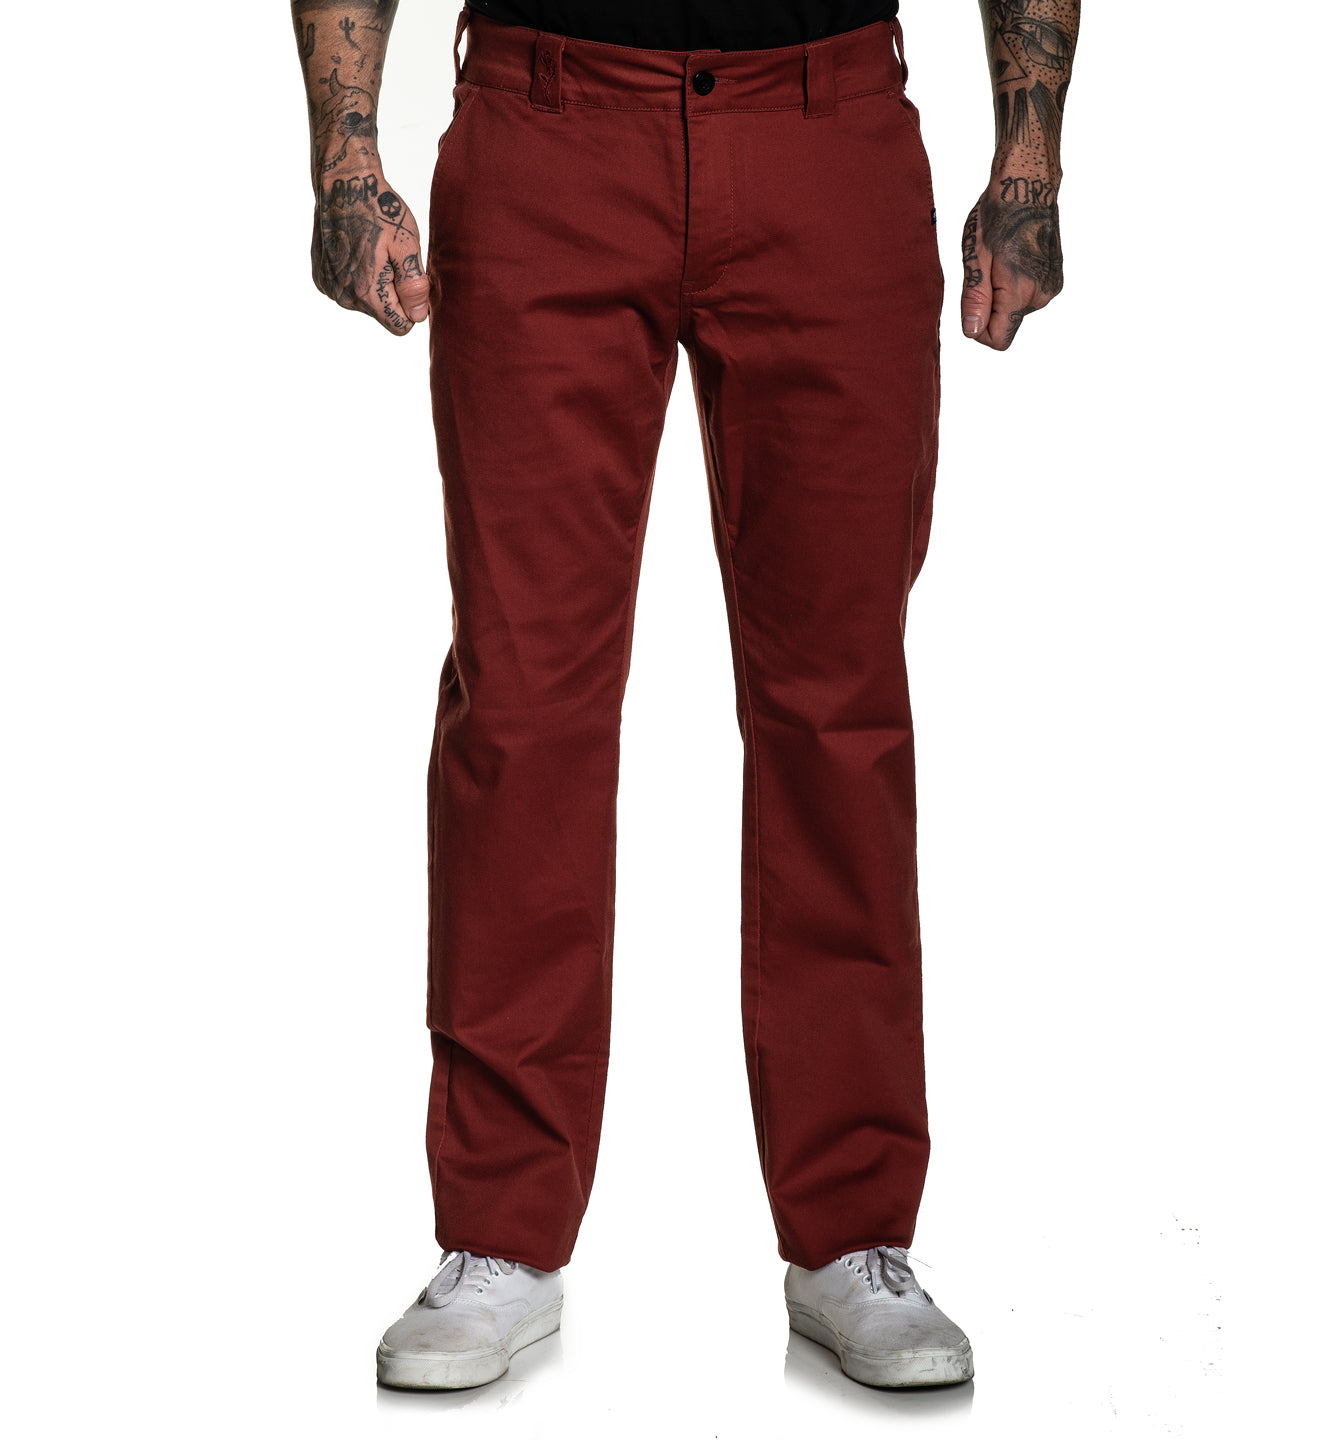 925 Relaxed fit Chino Stretch Pant Rosewood